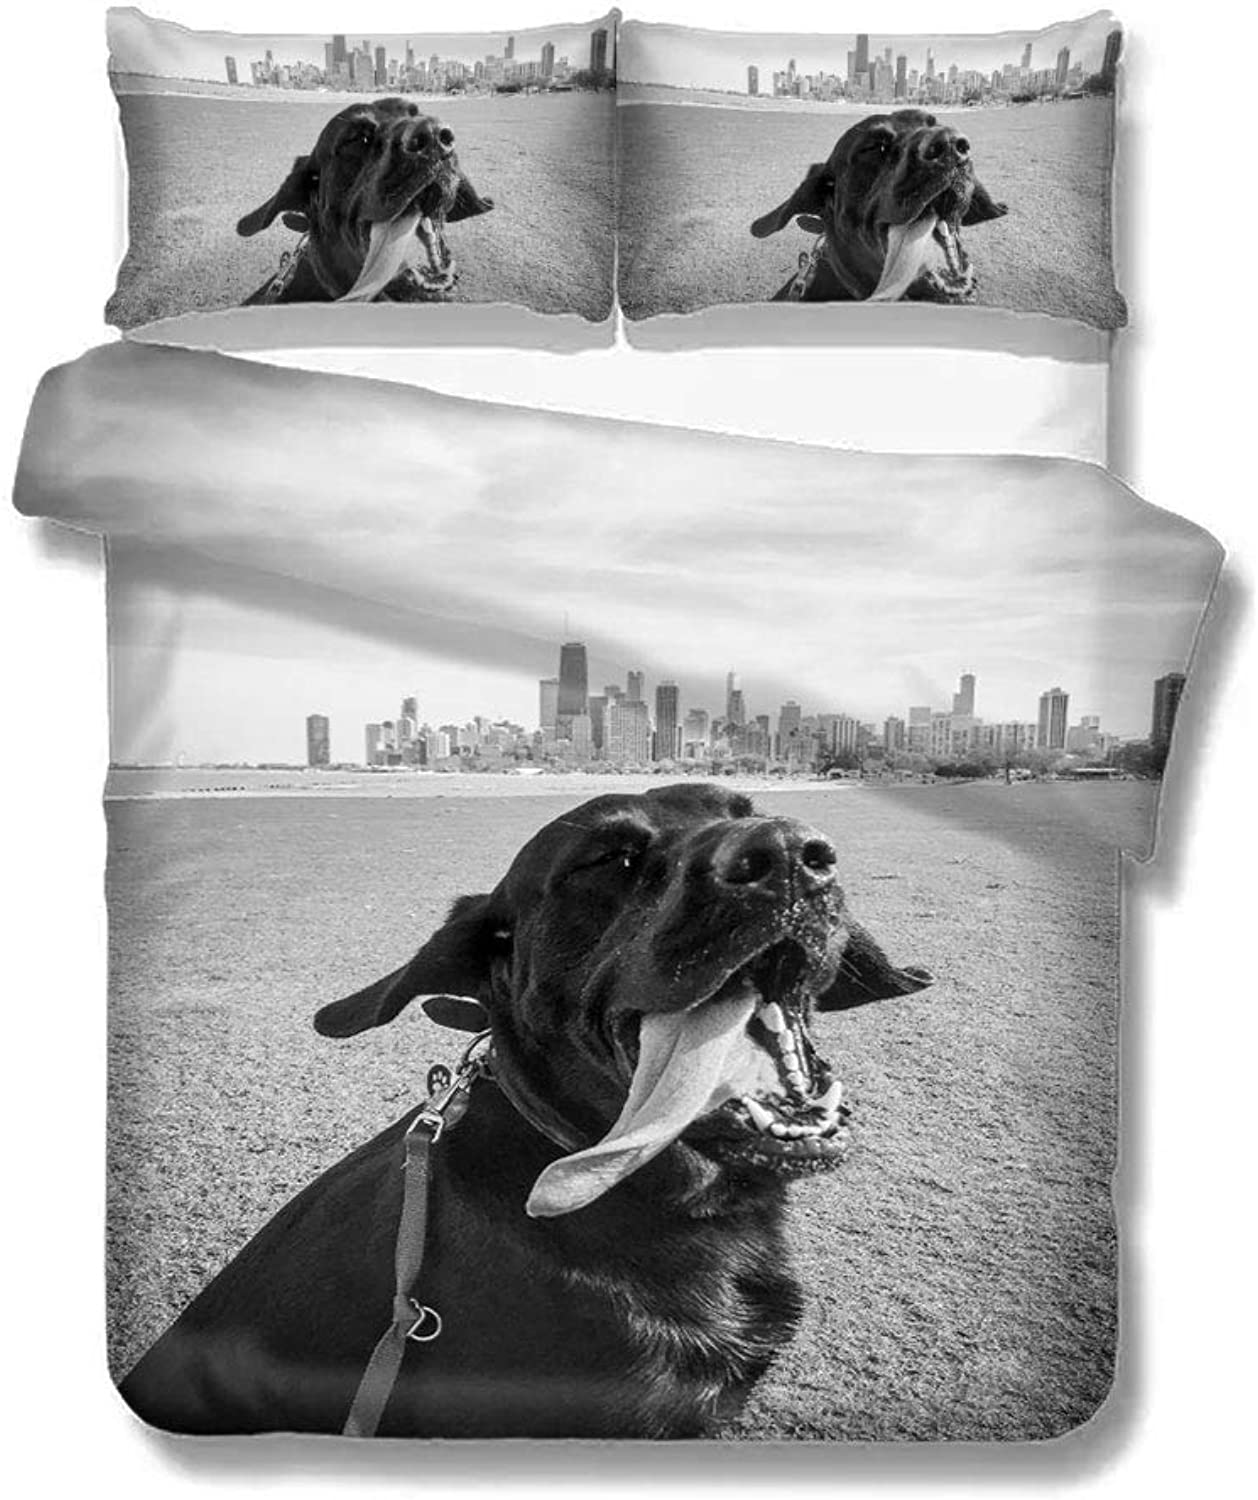 Duvet Cover Black Dog Sticking Tongue Out Home Bedding Duvet Cover Set Soft Comfortable Breathable Twin Size